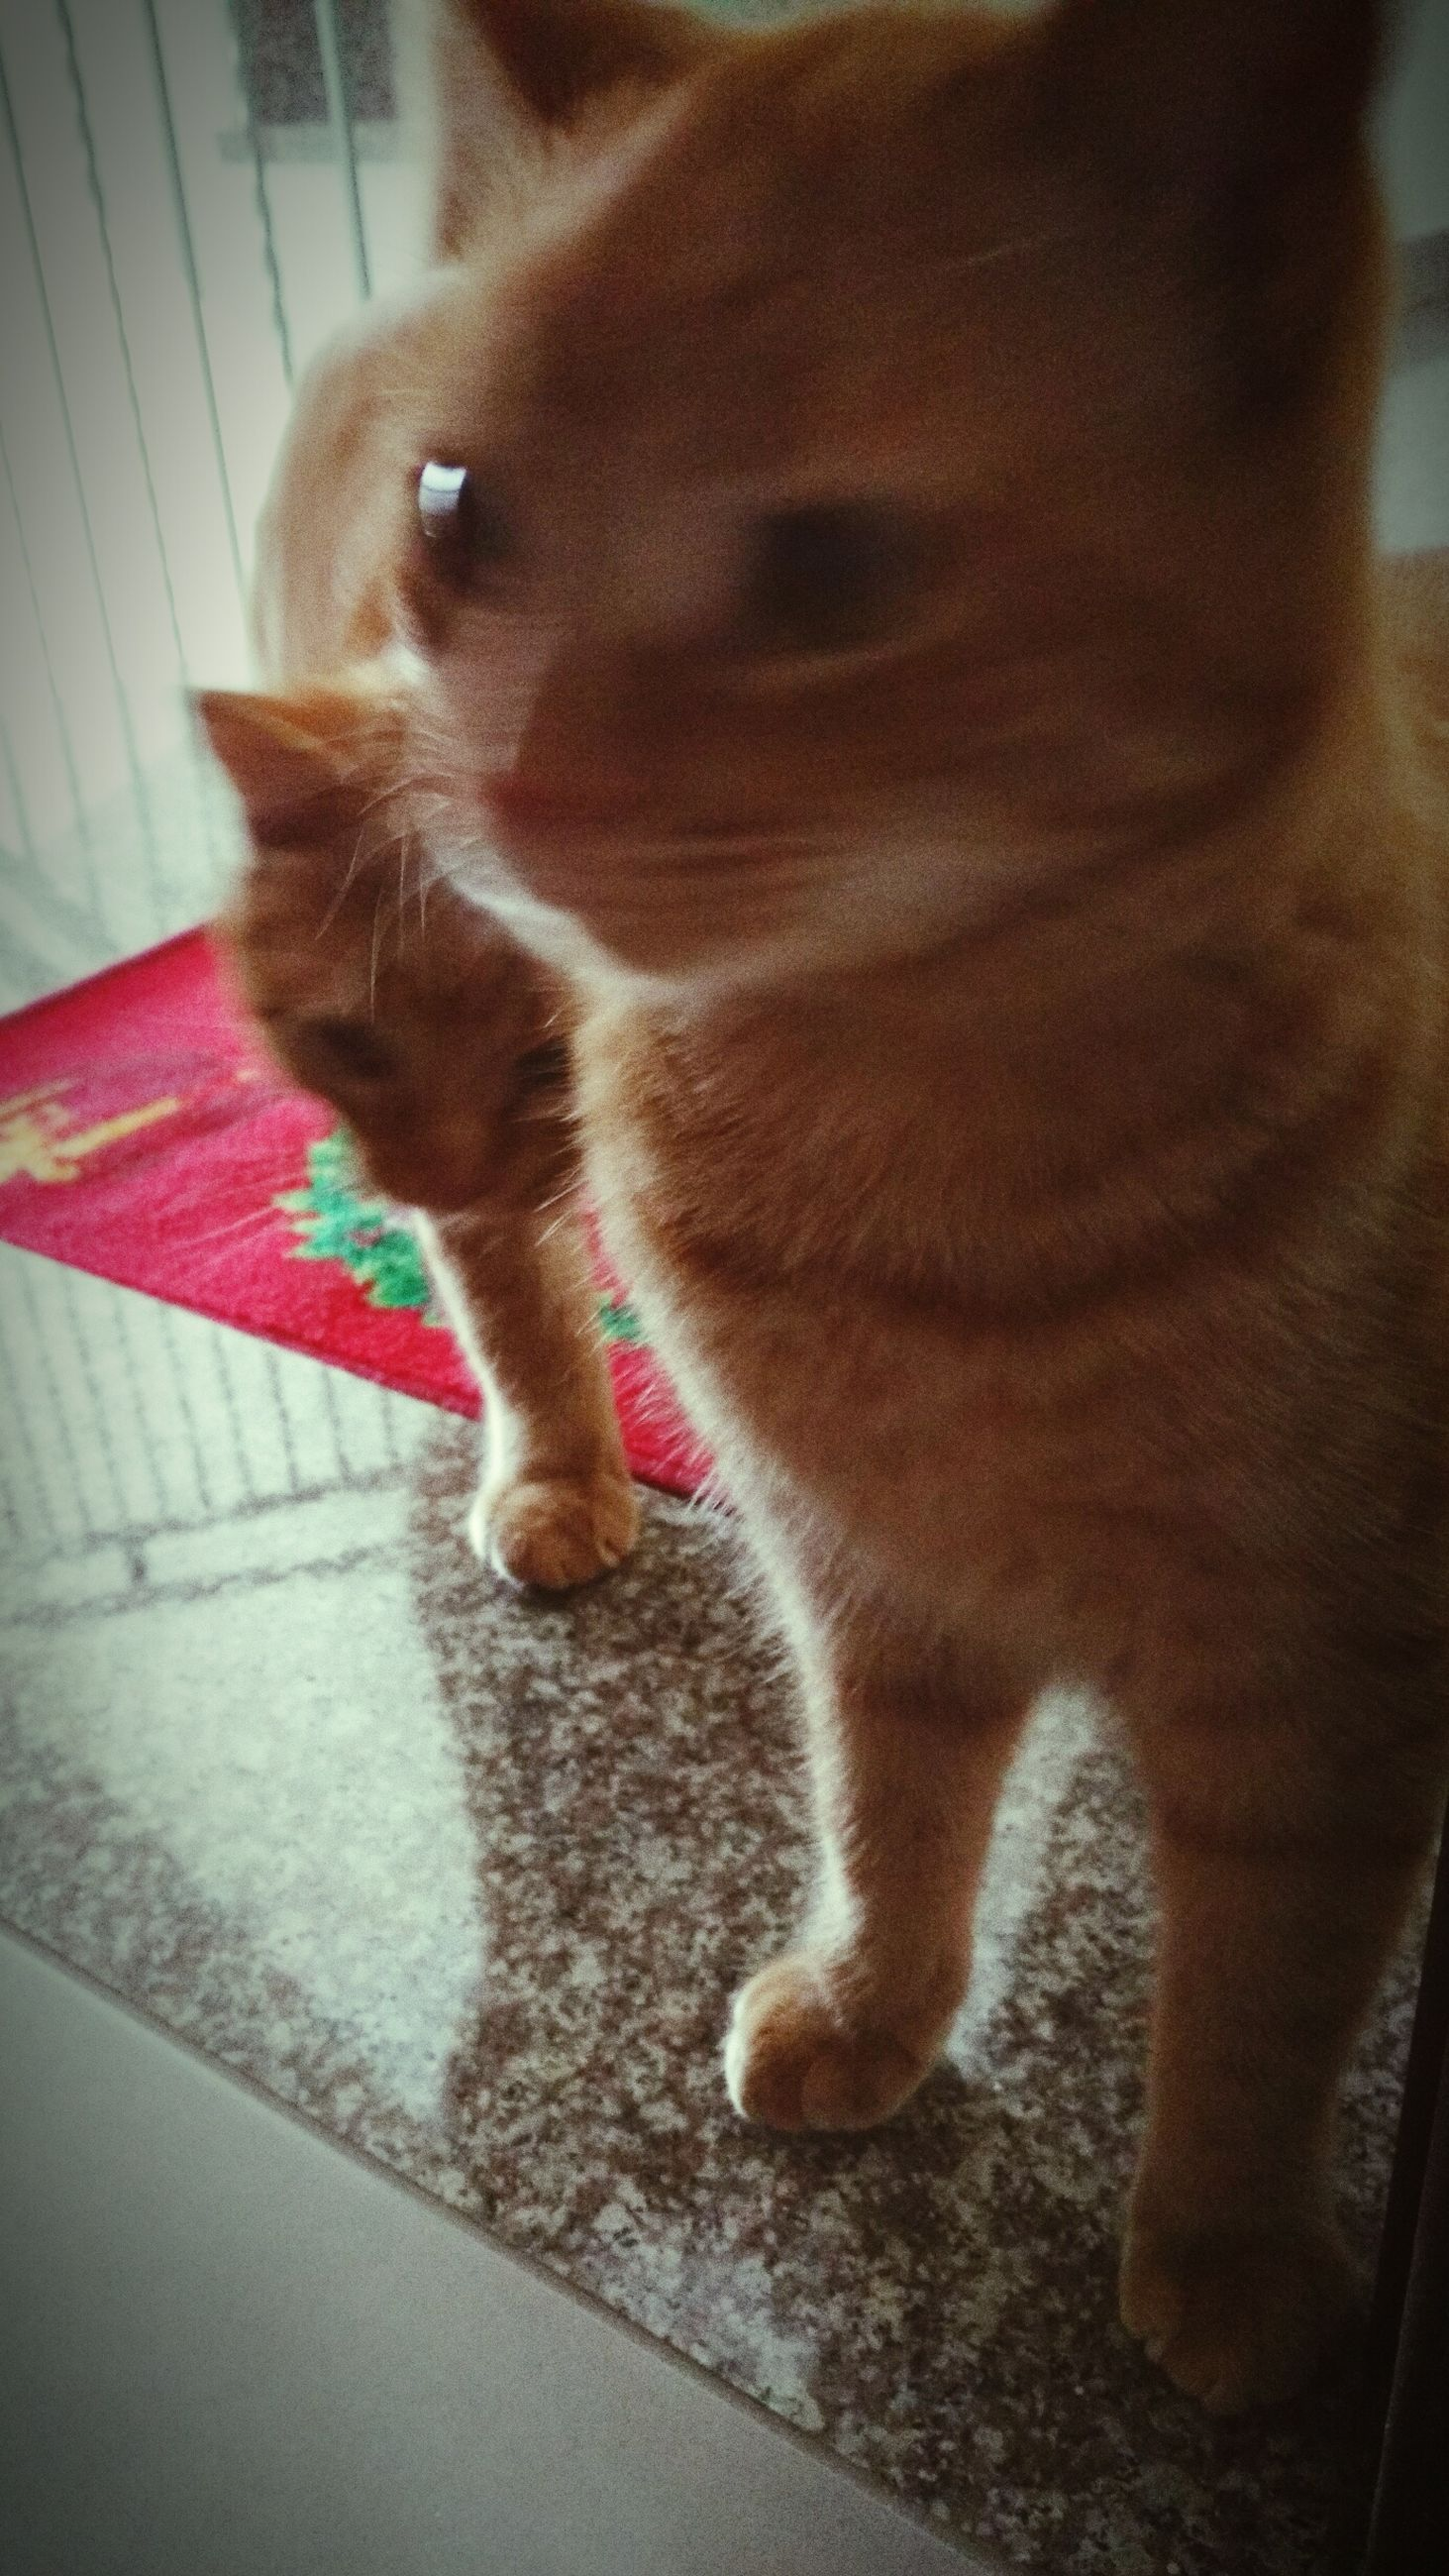 pets, one animal, domestic animals, domestic cat, animal themes, mammal, feline, cat, indoors, no people, animal leg, close-up, day, at home